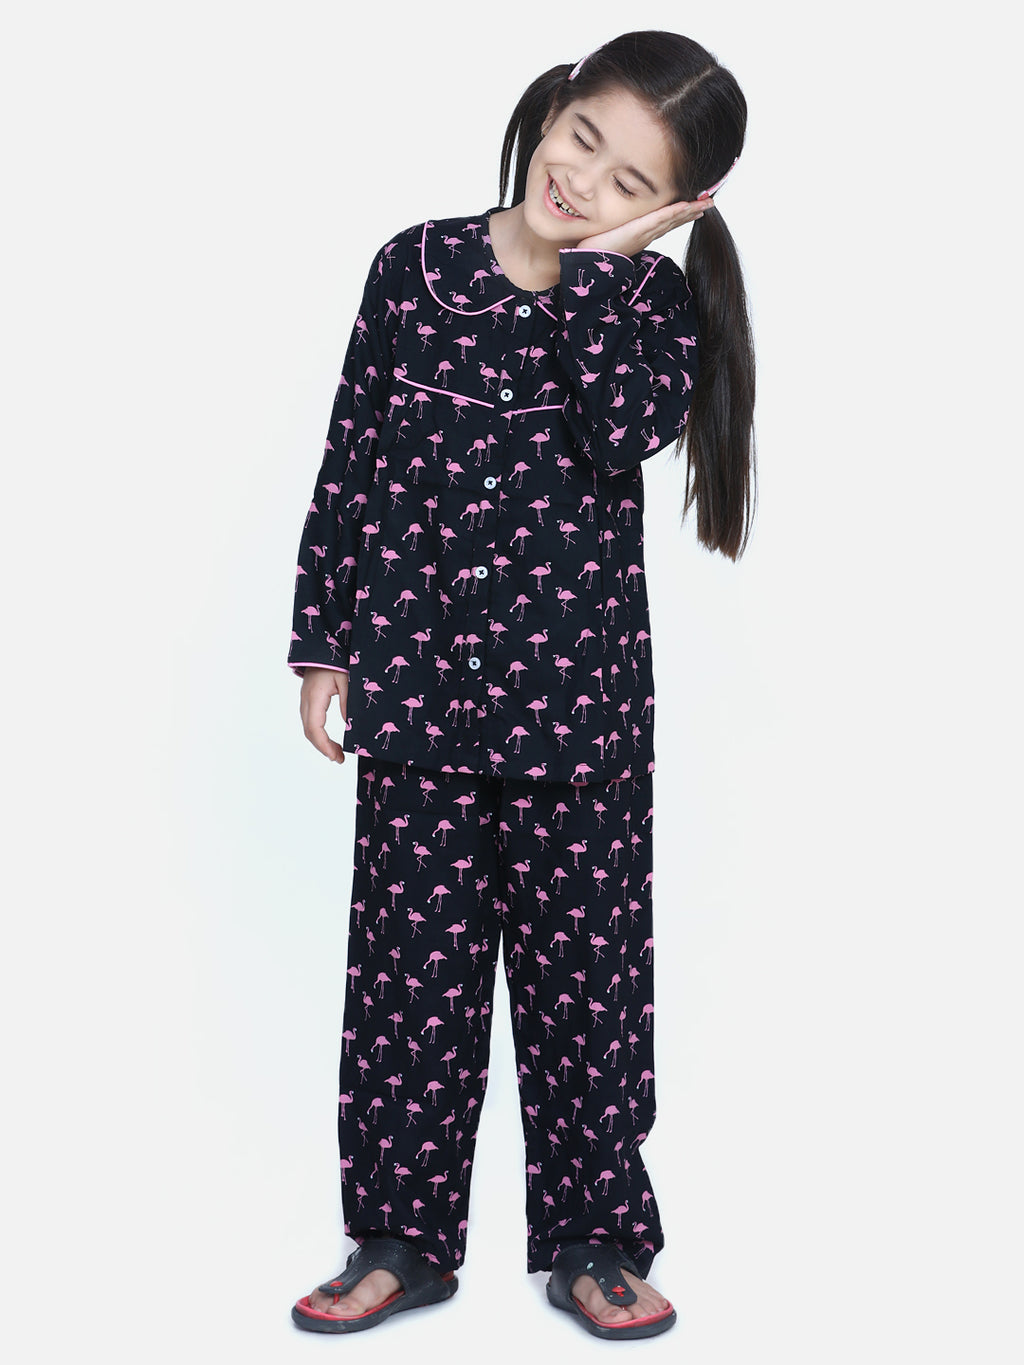 BownBee Girls Full Sleeve Printed Night Suit- Navy Blue